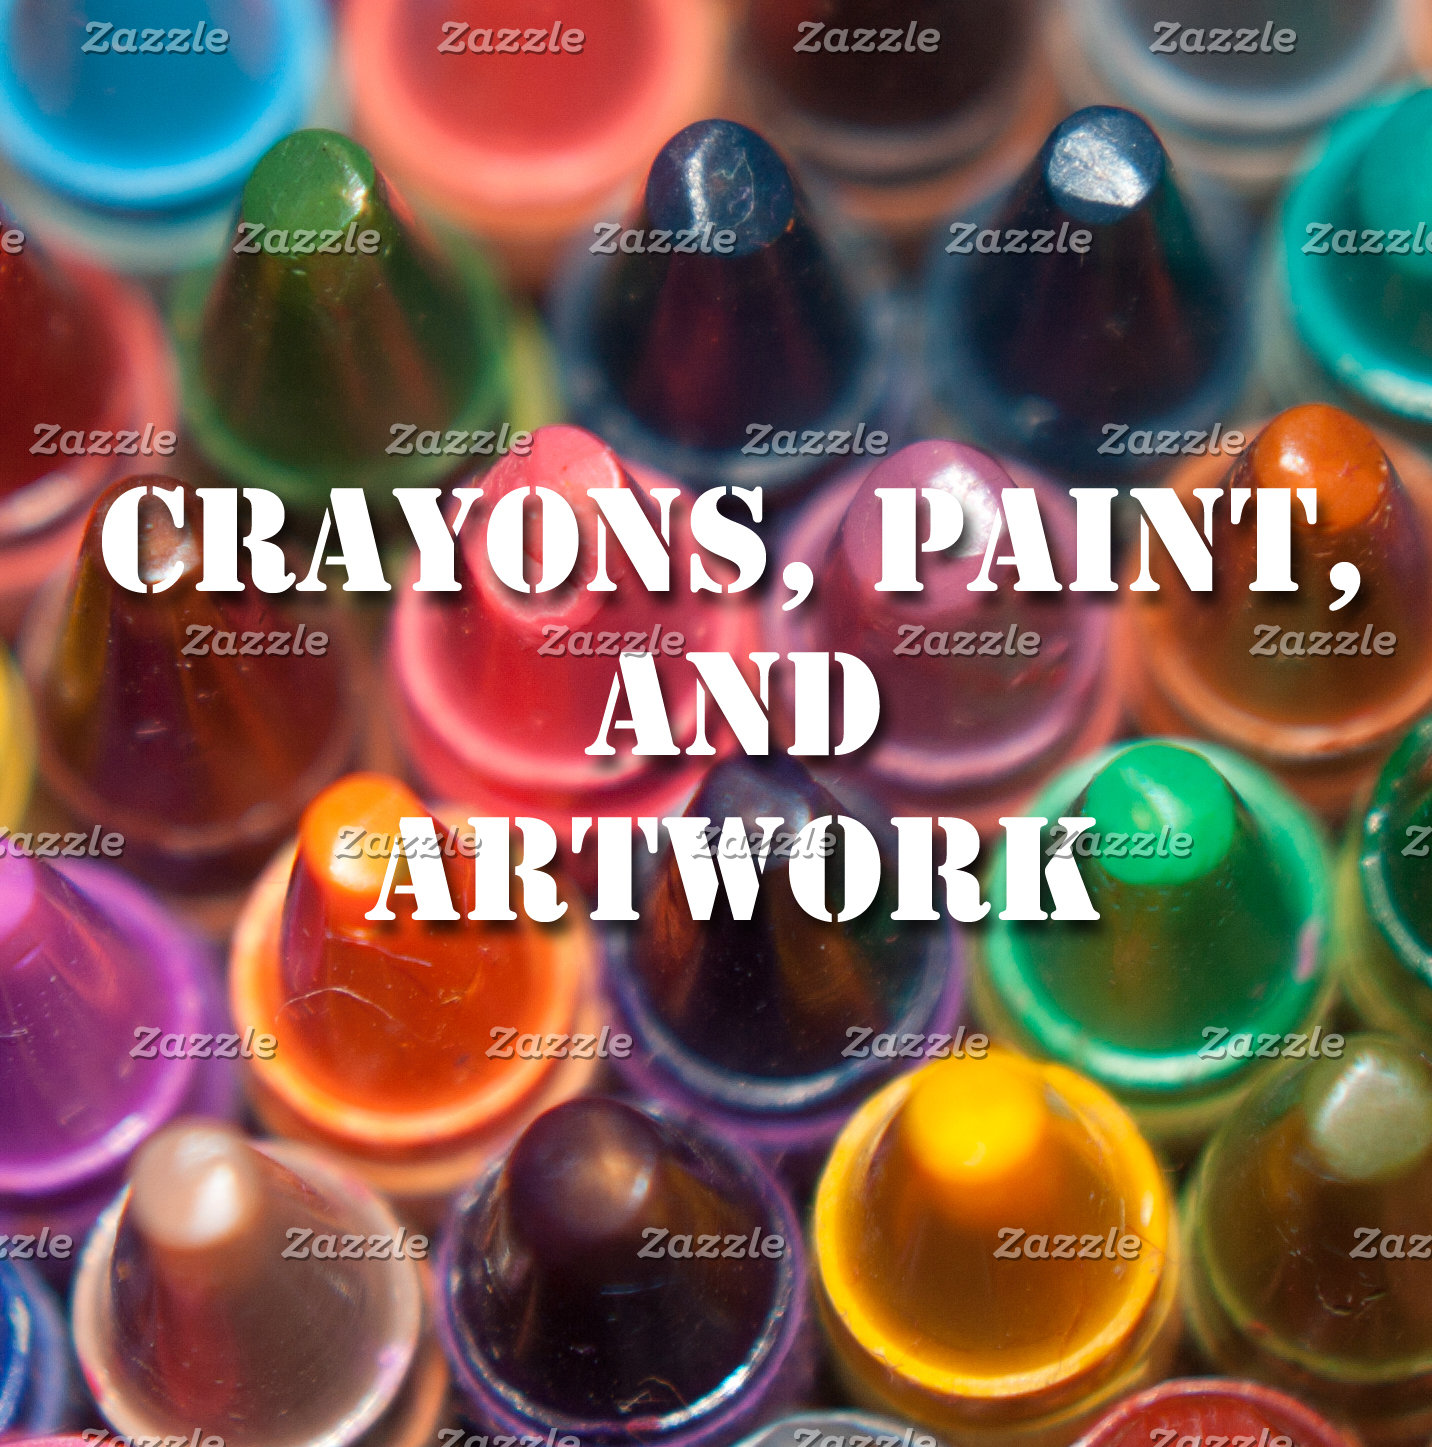 Crayons, Paint, and Artwork